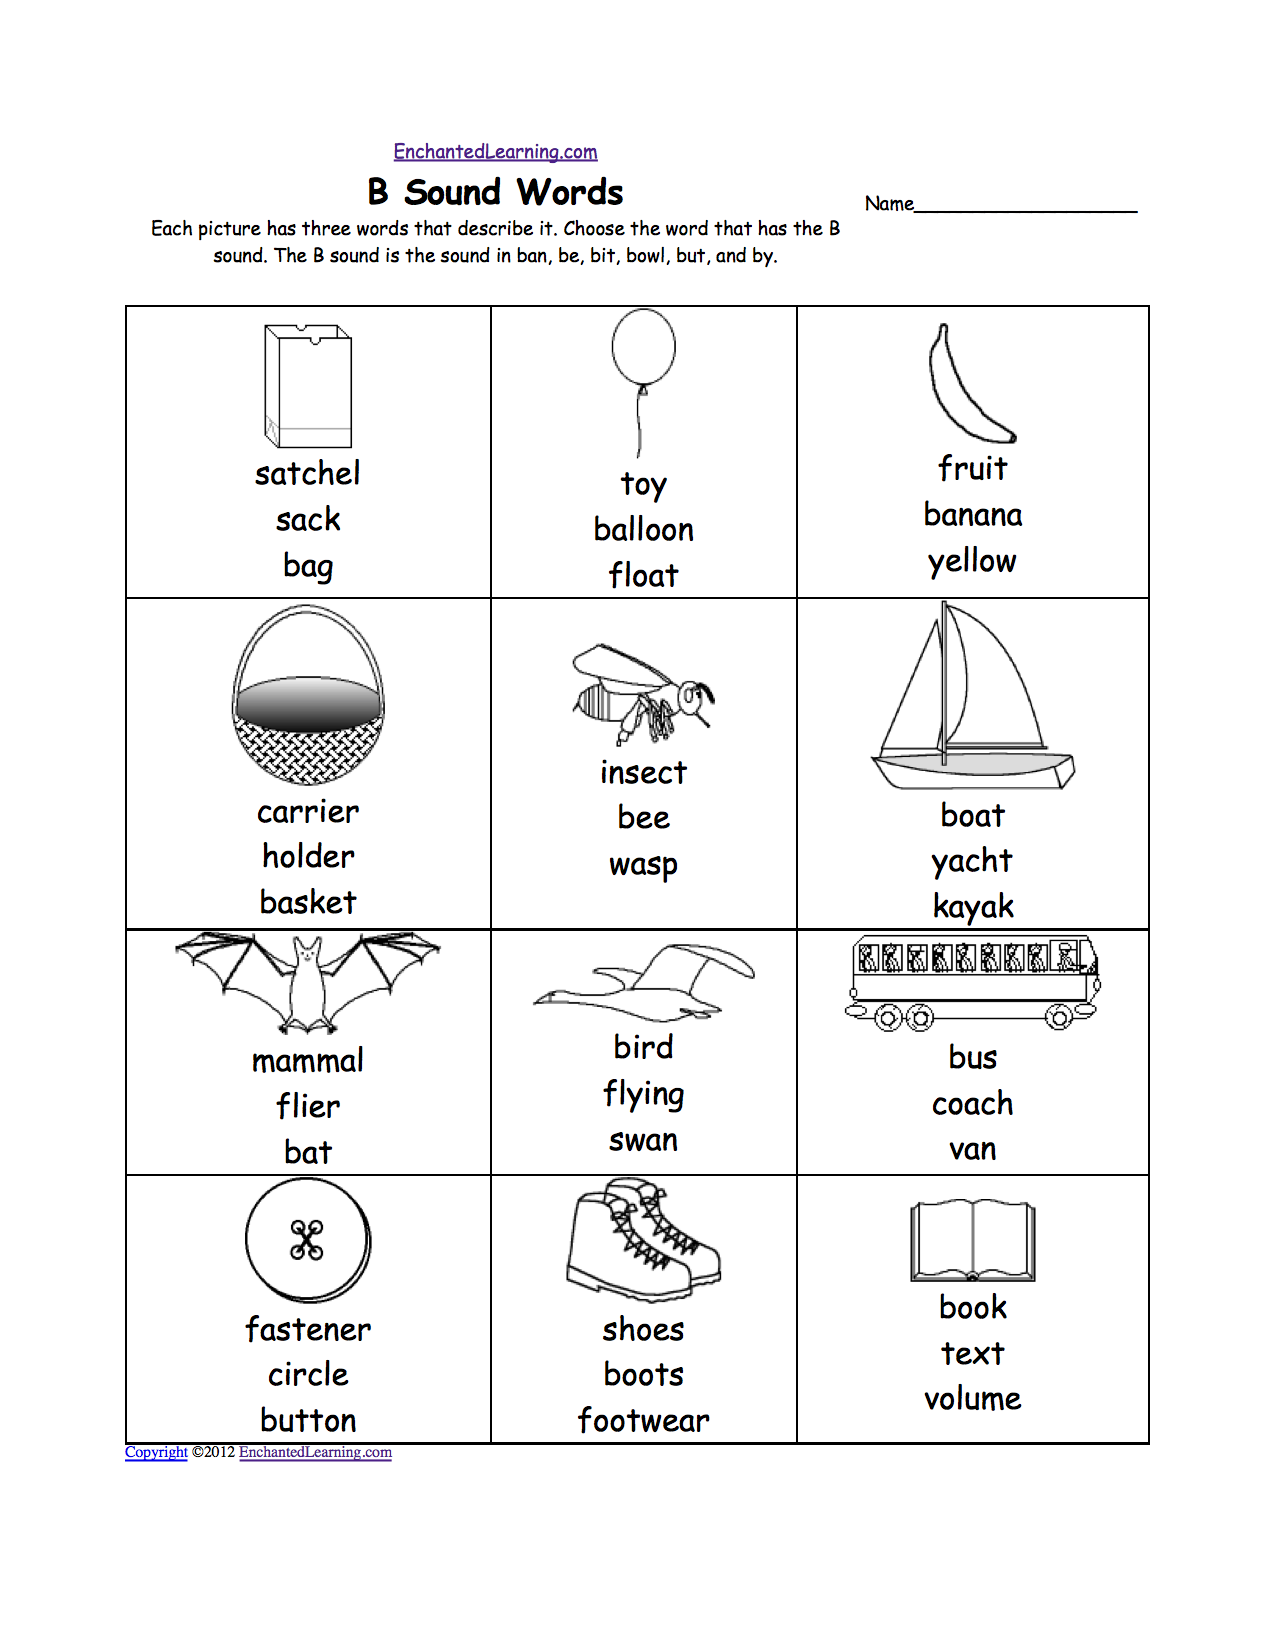 Proatmealus  Winning Phonics Worksheets Multiple Choice Worksheets To Print  With Interesting Quotbquot Sound Phonics Worksheet Multiple Choice Each Picture Has Three Words That Describe It Choose The Word That Has A Quotbquot Sound The Quotbquot Sound Is The Sound  With Cool Pre Primary Maths Worksheets Also Recipe Costing Worksheet In Addition Key Stage  Science Worksheets And Spring Vocabulary Worksheets As Well As Connect The Dots Alphabet Worksheets Additionally Number Patterns Worksheets Grade  From Enchantedlearningcom With Proatmealus  Interesting Phonics Worksheets Multiple Choice Worksheets To Print  With Cool Quotbquot Sound Phonics Worksheet Multiple Choice Each Picture Has Three Words That Describe It Choose The Word That Has A Quotbquot Sound The Quotbquot Sound Is The Sound  And Winning Pre Primary Maths Worksheets Also Recipe Costing Worksheet In Addition Key Stage  Science Worksheets From Enchantedlearningcom